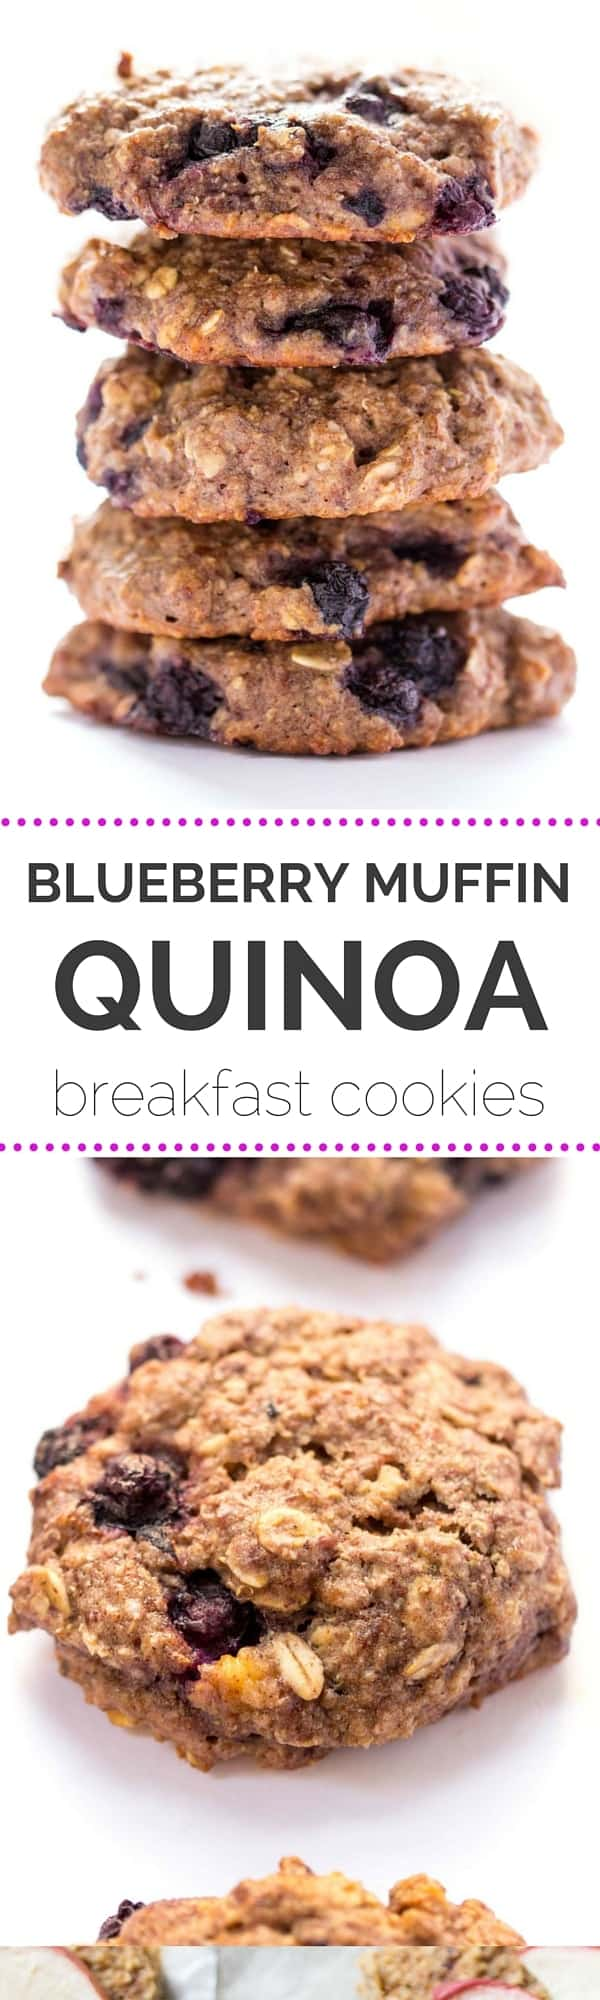 Blueberry Muffin Quinoa Breakfast Cookies Sweetened Naturally Without Any Dairy Or Eggs